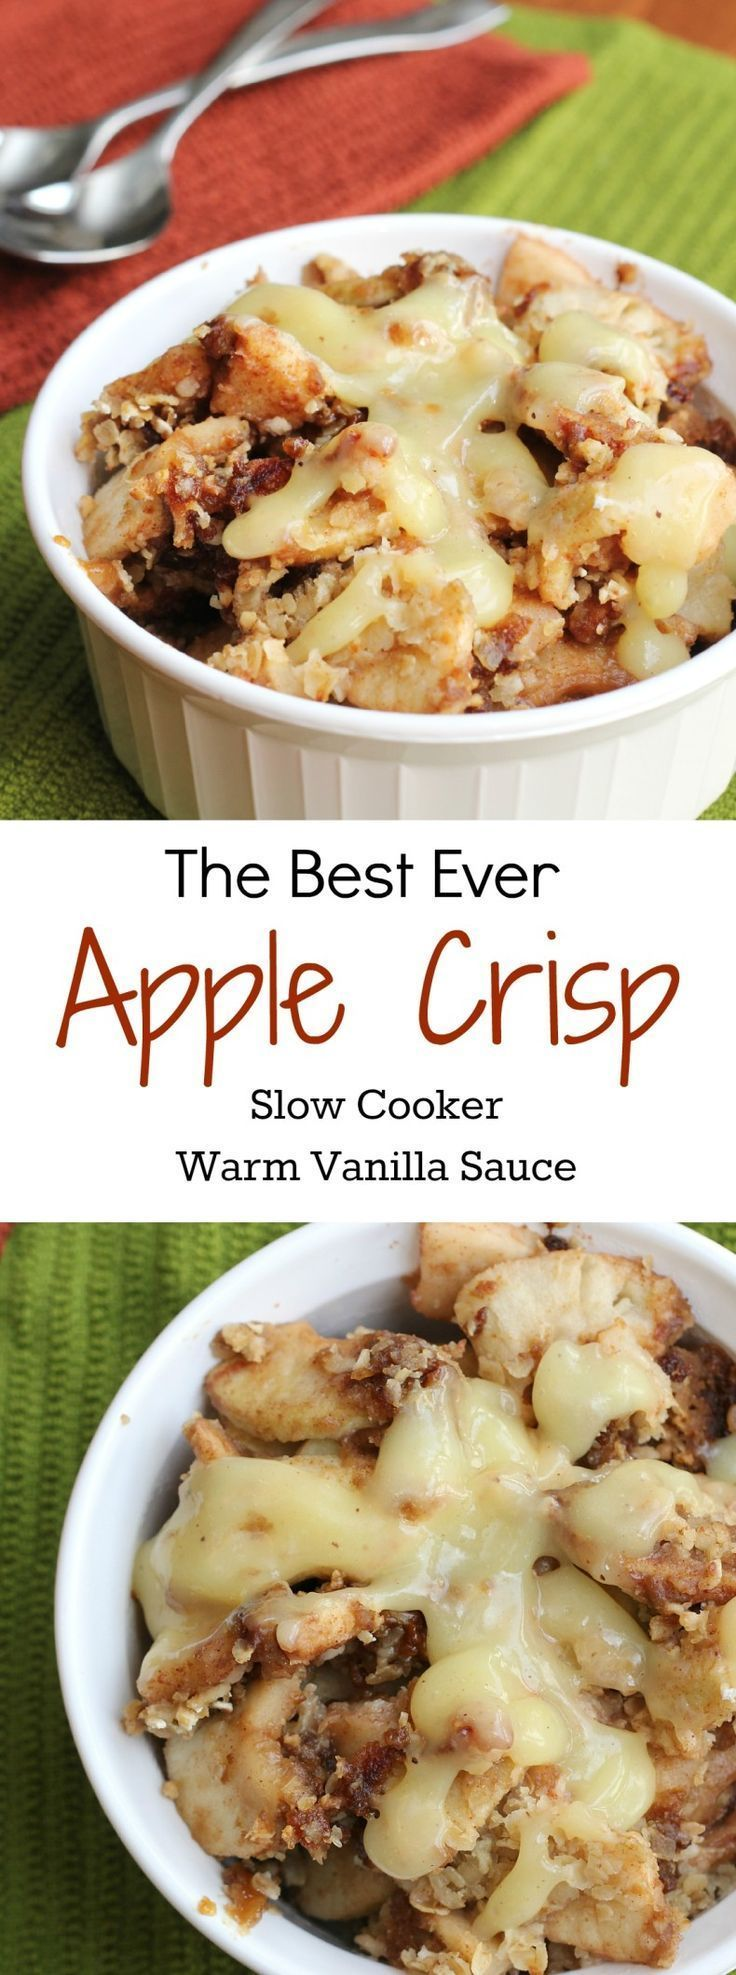 You might have many apple crisp recipes in your collection yet this one for Slow Cooker Apple Crisp with Warm Vanilla Sauce raises the bar!